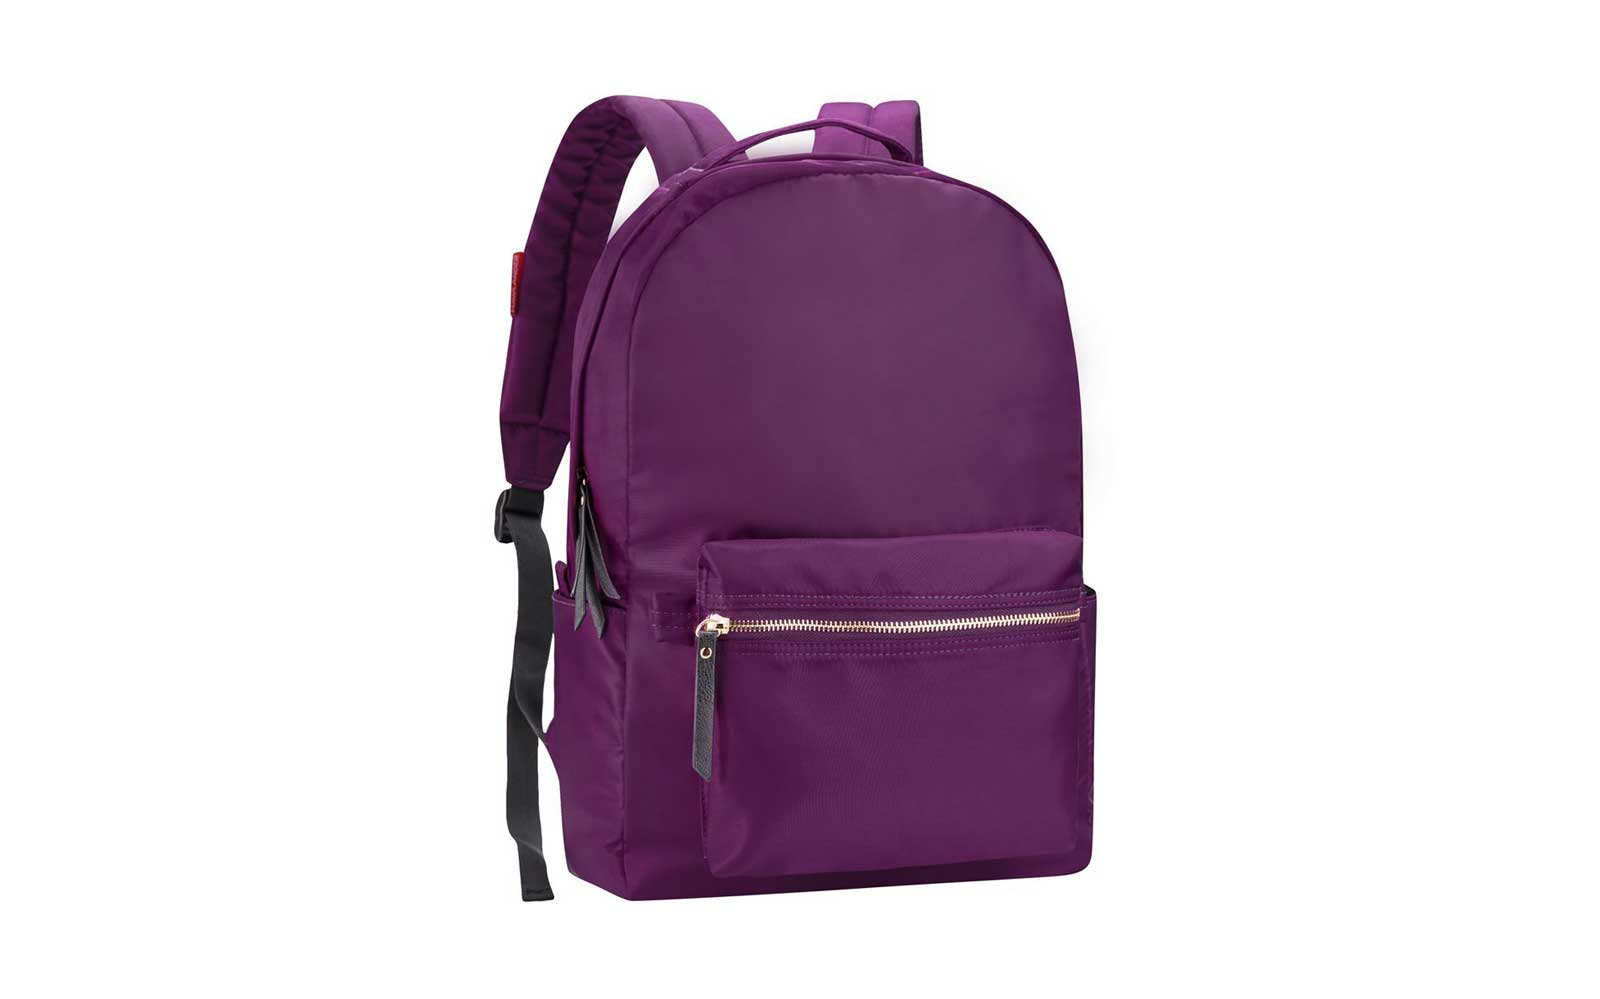 716e217d0135 The Most Popular Backpacks on Amazon Right Now